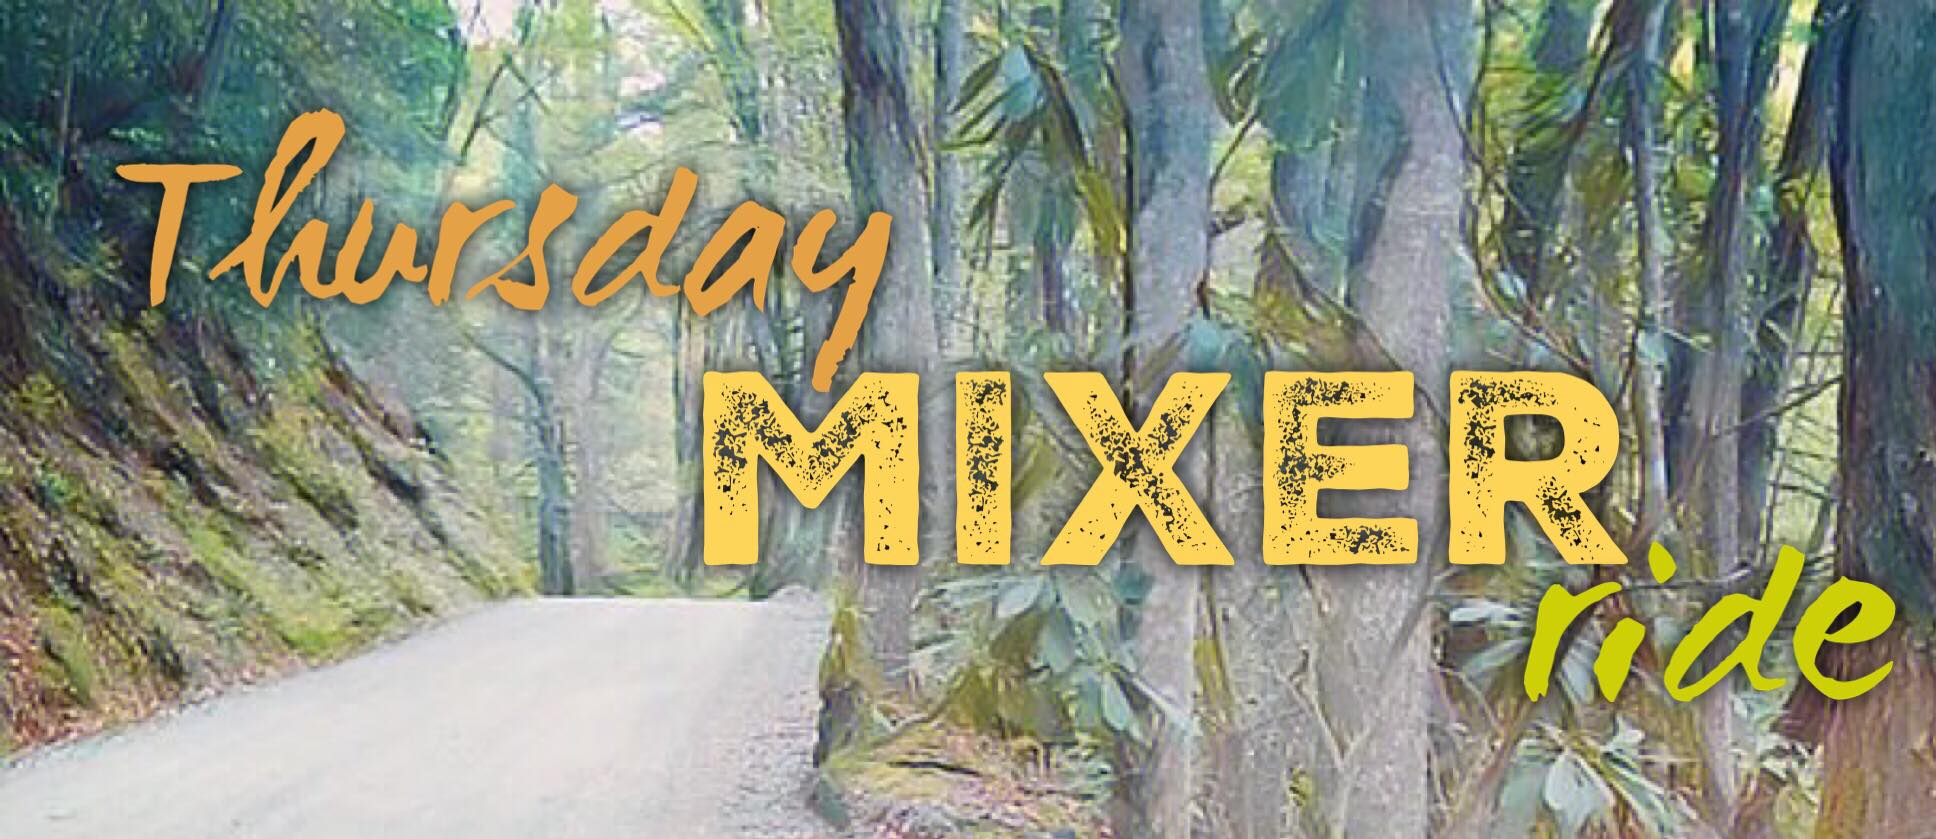 EVERY THURSDAY (starting July 18th) @ 6pm for the Thursday MIXER ride.   This mixed surface ride is a 21-mile route with almost 2,400 feet of climbing and features two beautiful segments of gravel. Gravel bikes, cyclocross bikes or road bikes with at least 28mm tires are recommended.  Roll from Rhoddie Bicycle Outfitters @ 6pm  CLICK HERE TO SEE THE ROUTE:  https://ridewithgps.com/routes/30479628   More Info Here:  https://www.facebook.com/events/2063883817250859/